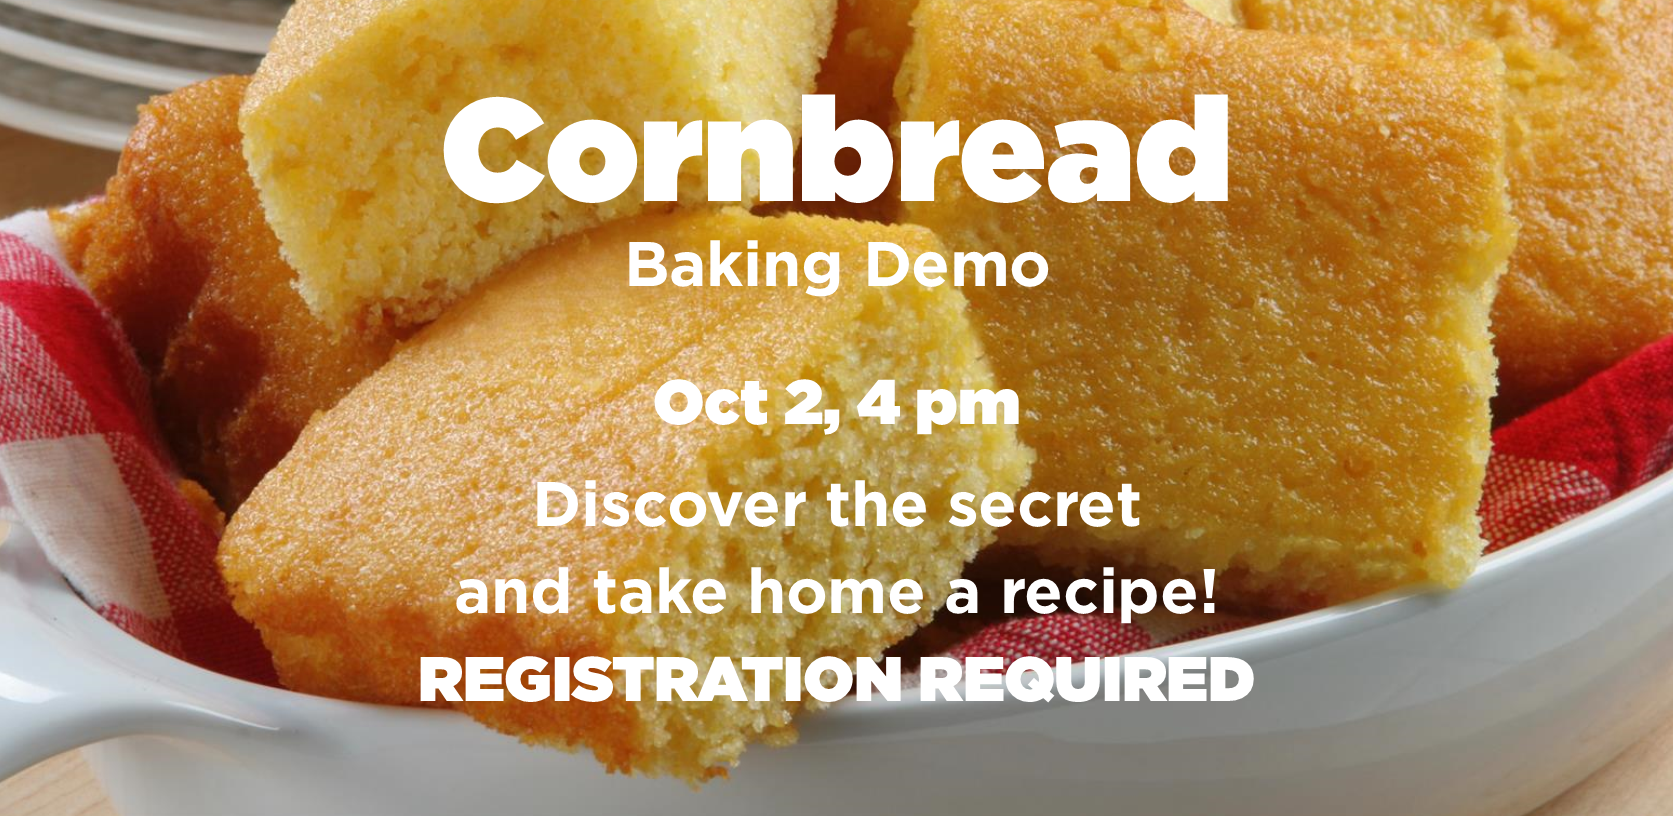 Cornbread Baking Demonstration